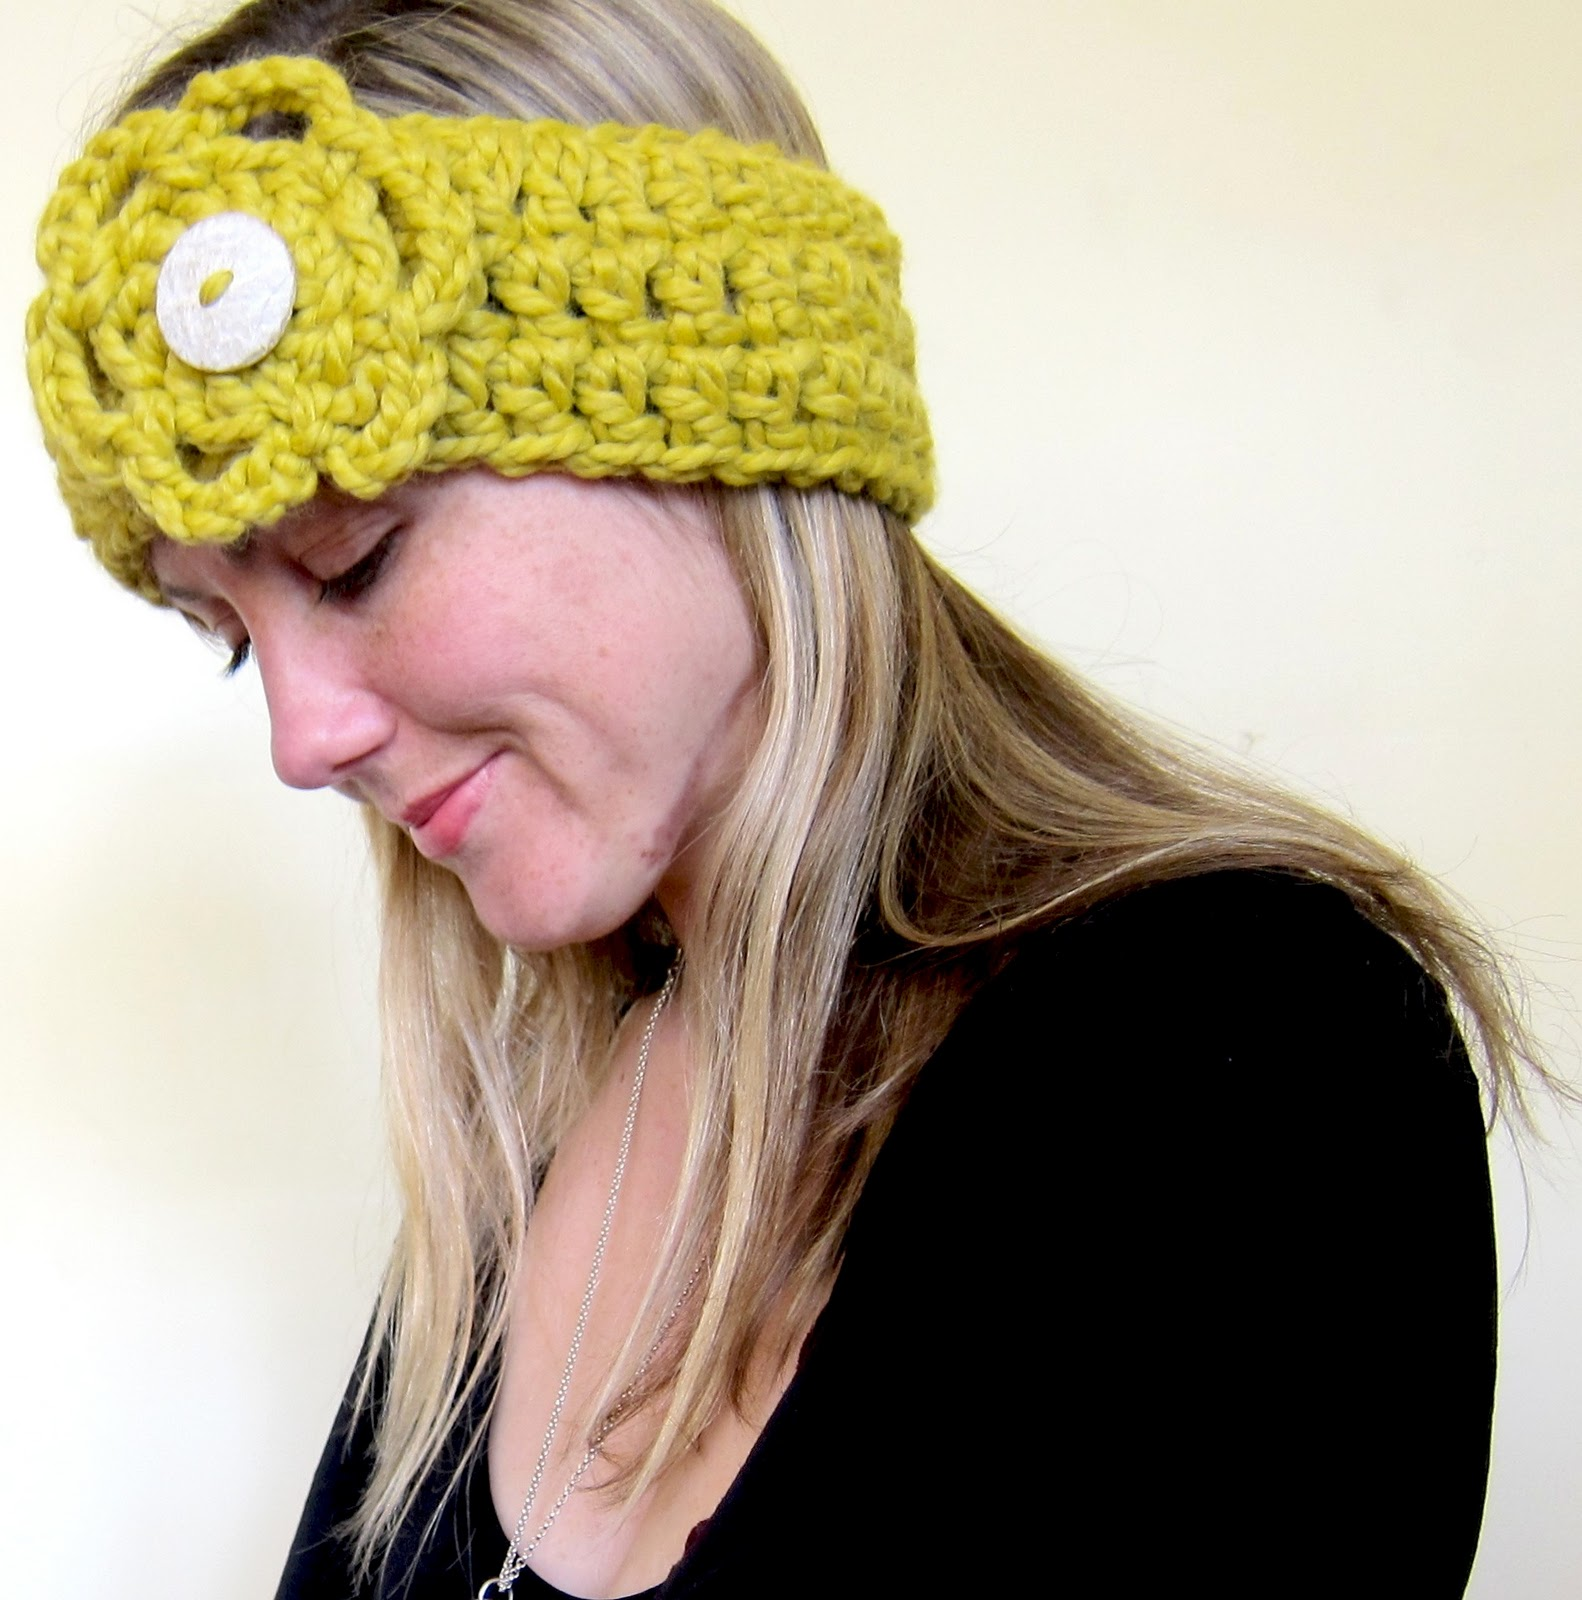 Crochet Flower Ear Warmer Tutorial : Mel P Designs: Free crochet headband earwarmer pattern